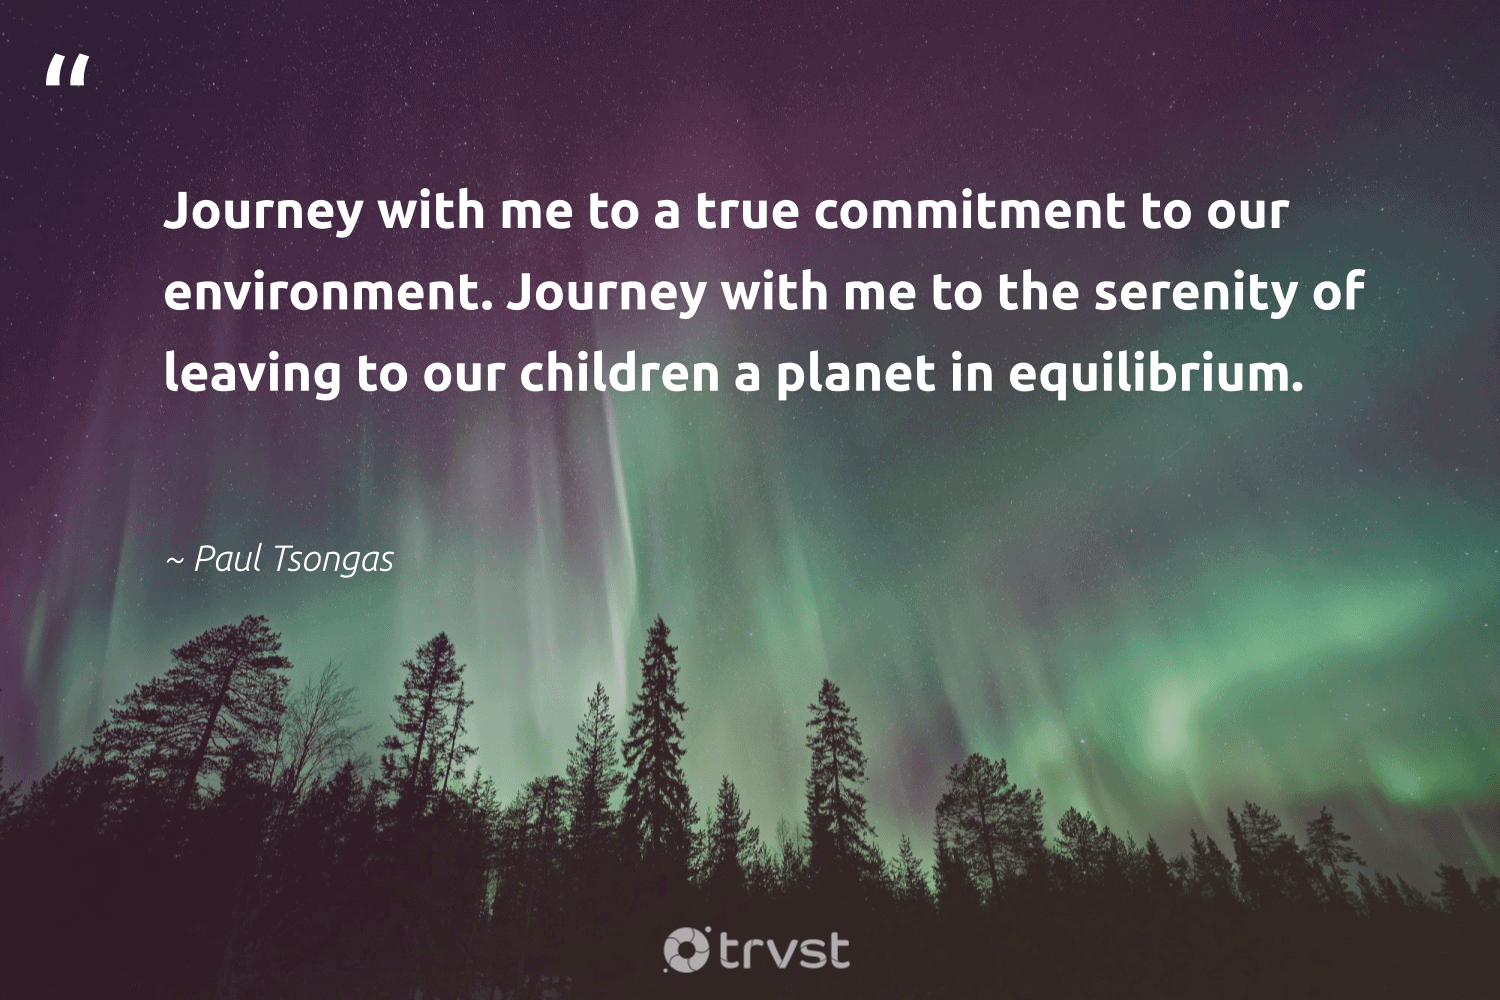 """""""Journey with me to a true commitment to our environment. Journey with me to the serenity of leaving to our children a planet in equilibrium.""""  - Paul Tsongas #trvst #quotes #environment #planet #children #nature #conservation #wildlifeplanet #natureseekers #dotherightthing #earth #mothernature"""